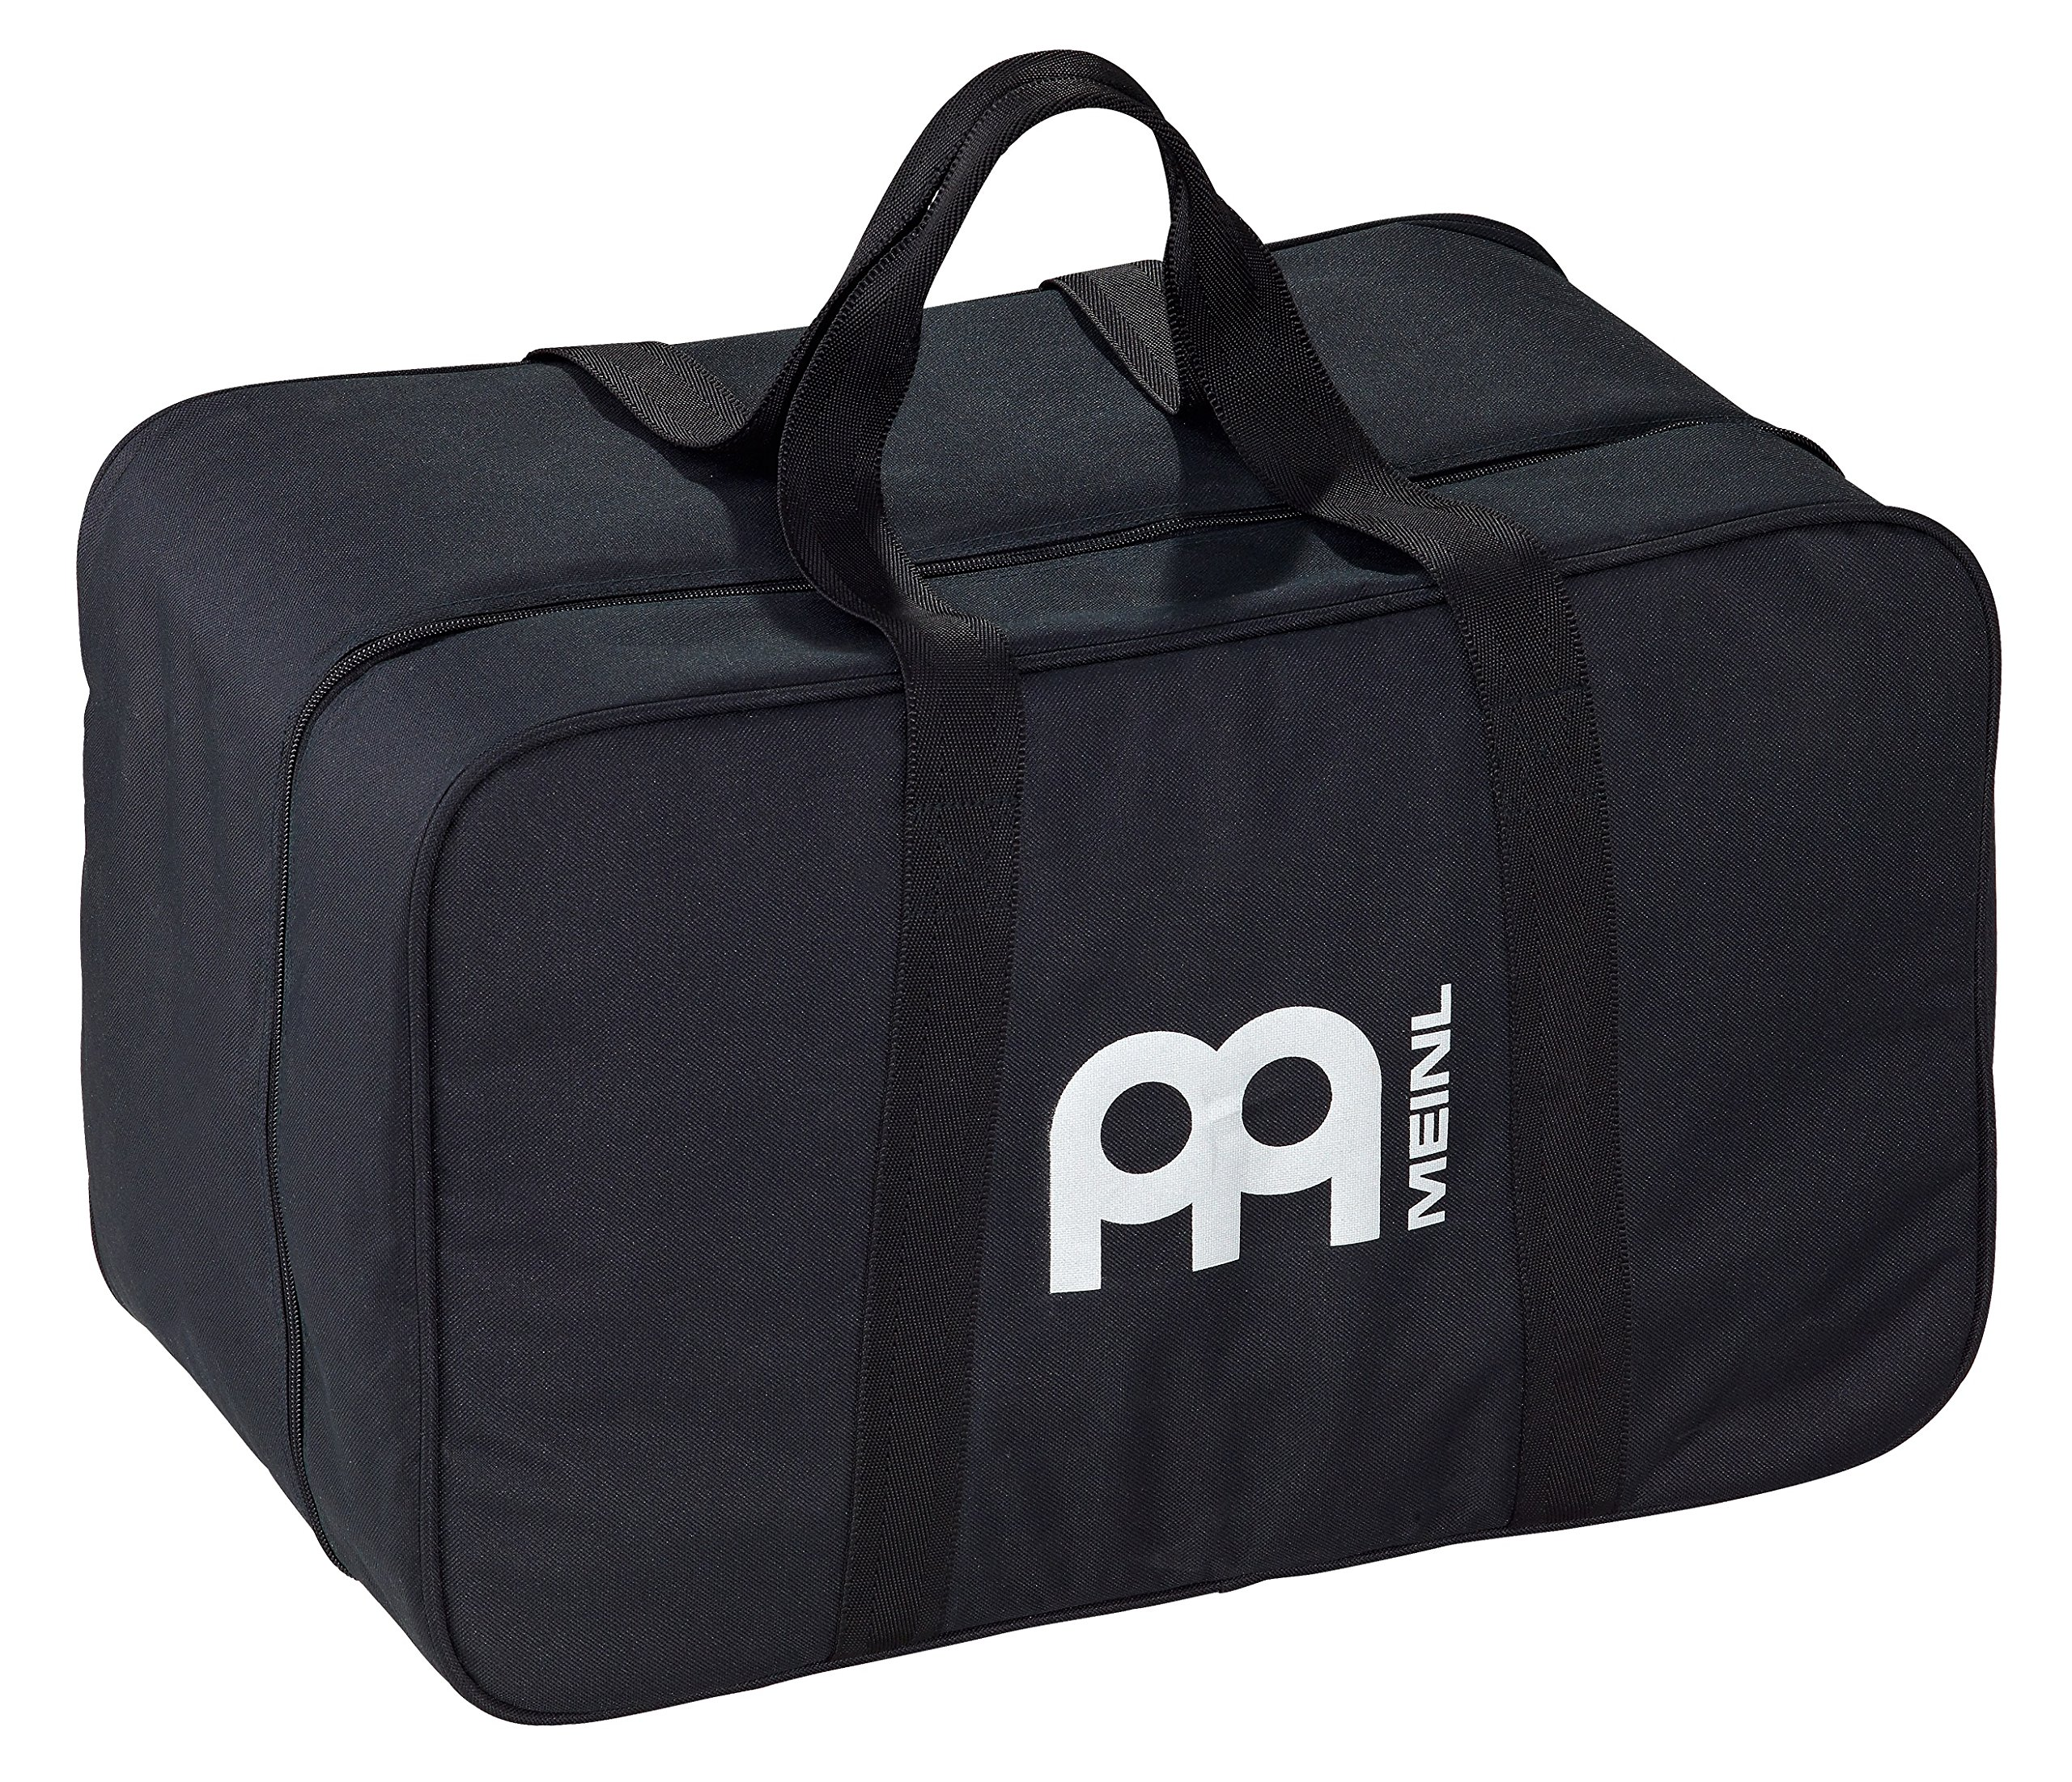 Meinl Percussion MSTCJB Padded Standard Cajon Bag with Carrying Grip, Fits Most Common Cajons (VIDEO)